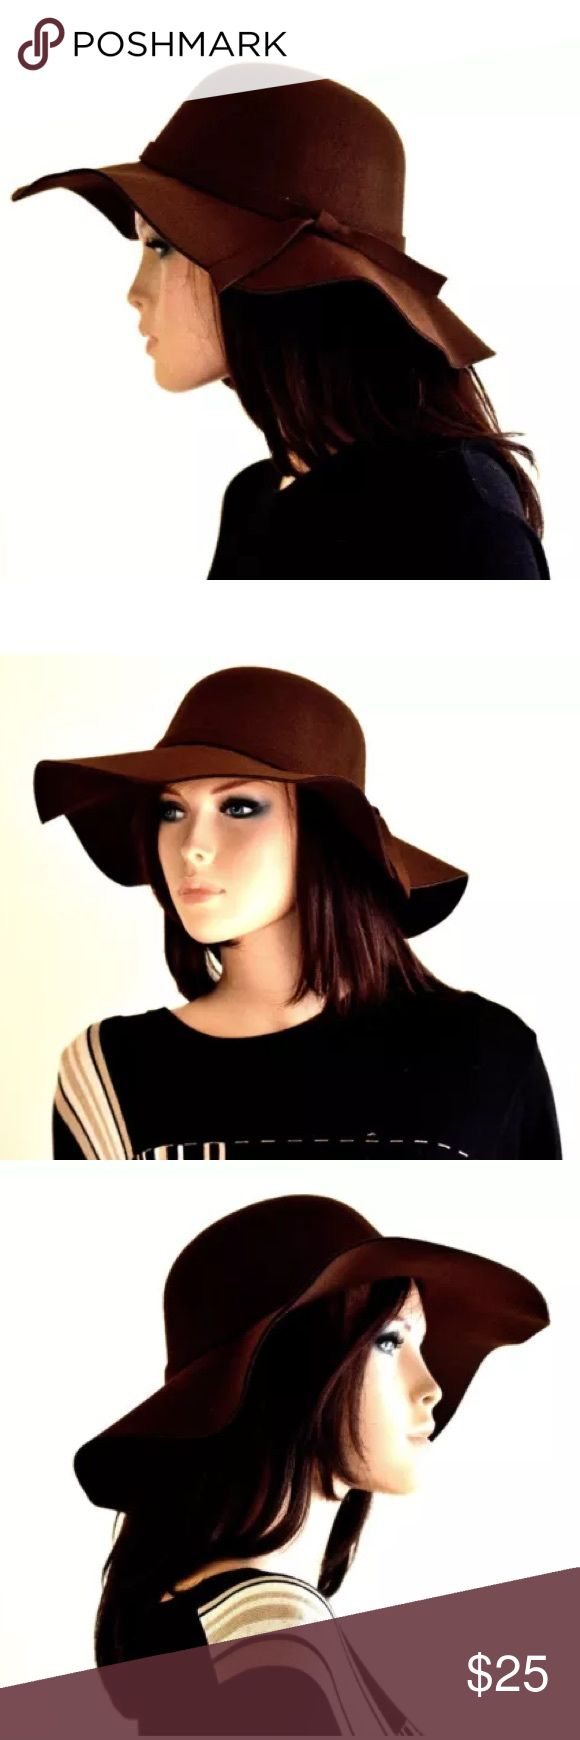 Brown felt hat floppy hat wide brim hats sun hat Proudly introducing Sassy & Cool brown felt hat!  These hats are so so classy and has a vintage inspired design. It is also complemented with a knot on the side.  Perfect for those days in the sun or cool nights!  Hat circumference: 21.65 inches  Hat height: 5.51 inches   Cool hats, women hats, derby hats, winter hats, vintage hats, womens winter hats, fashion hats, womens dress hats, fancy hats  SHIPPING  This item is ready to ship within 1-2…